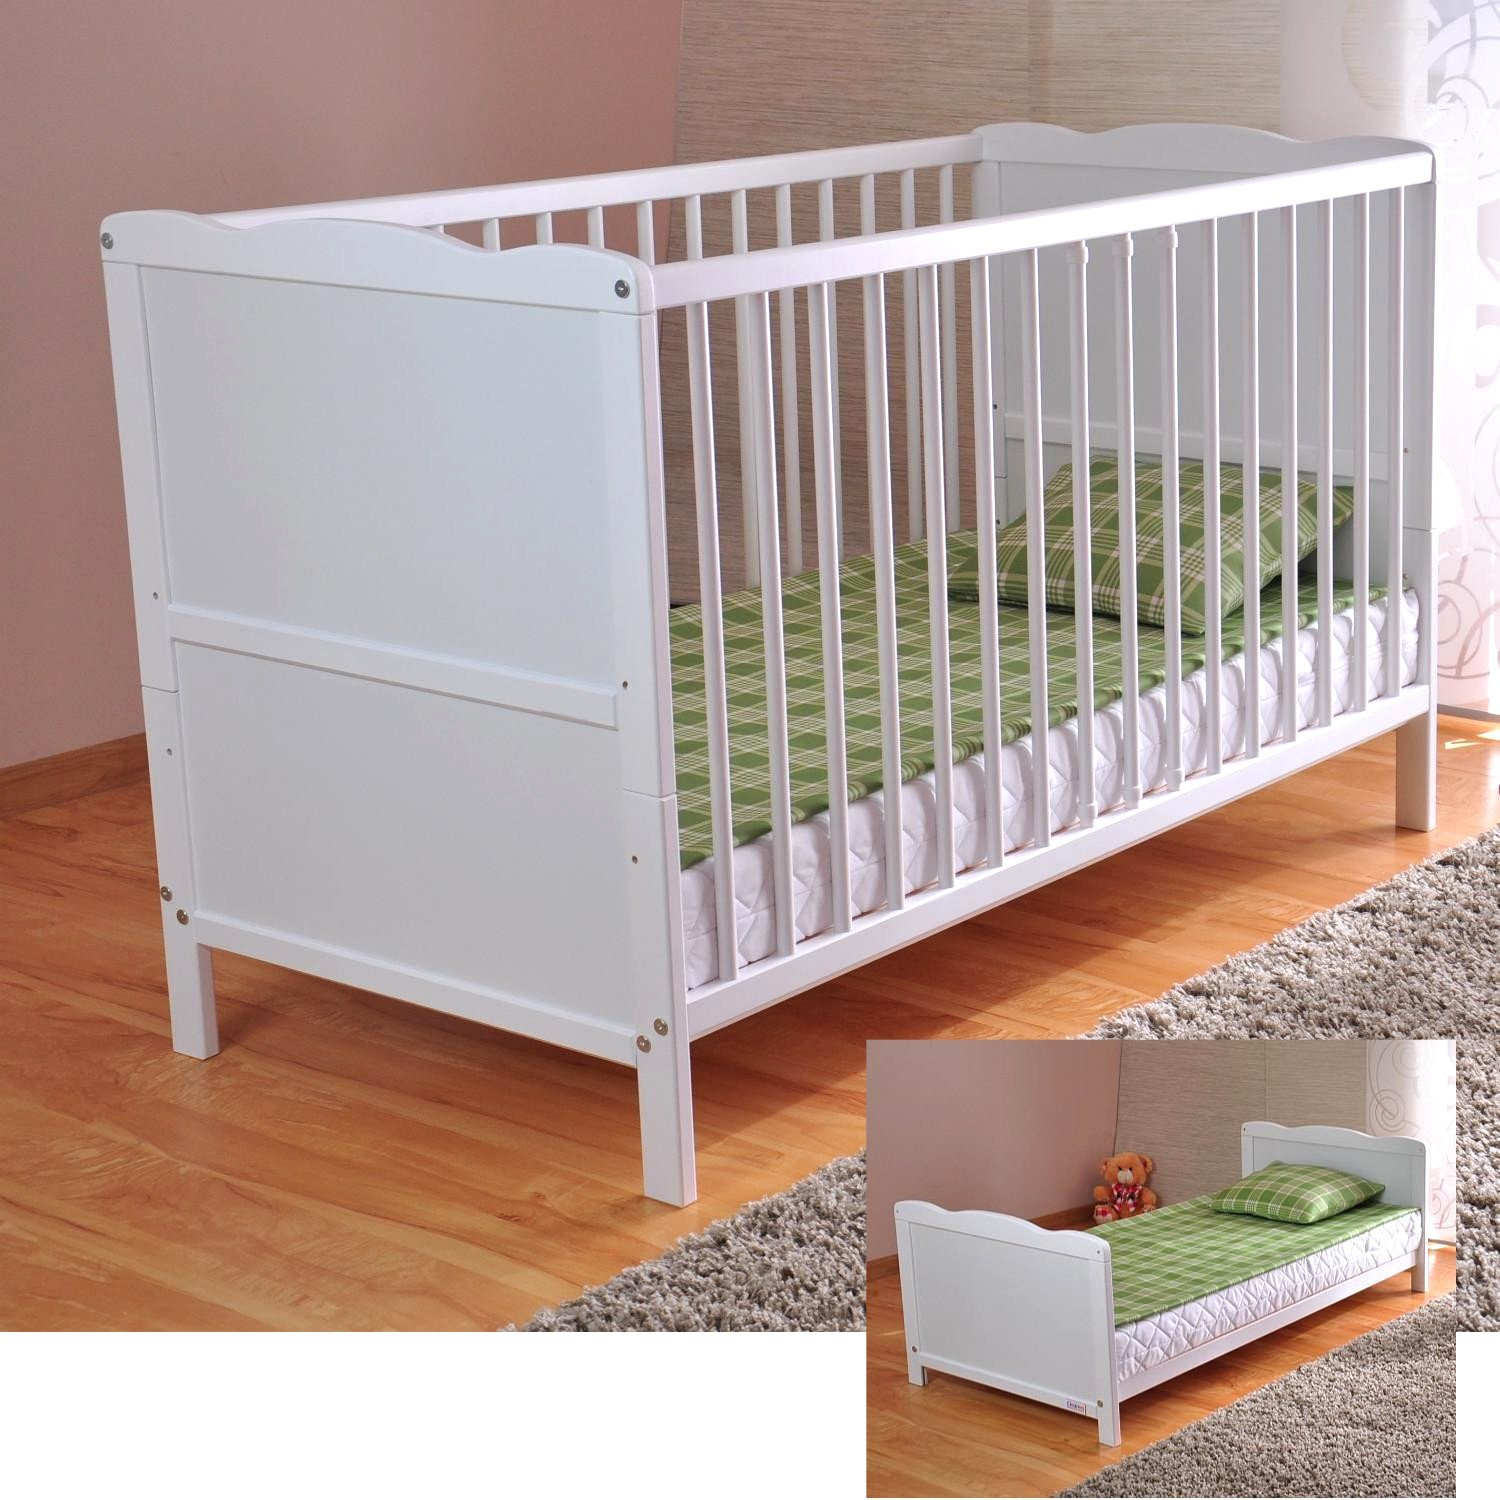 ... White Solid Wood Baby Cot Bed U0026 Deluxe Foam Mattress Converts Into A  Junior Bed ✓ 3 Position ✓ Water Repellent Mattress Liner: Amazon.co.uk: Baby